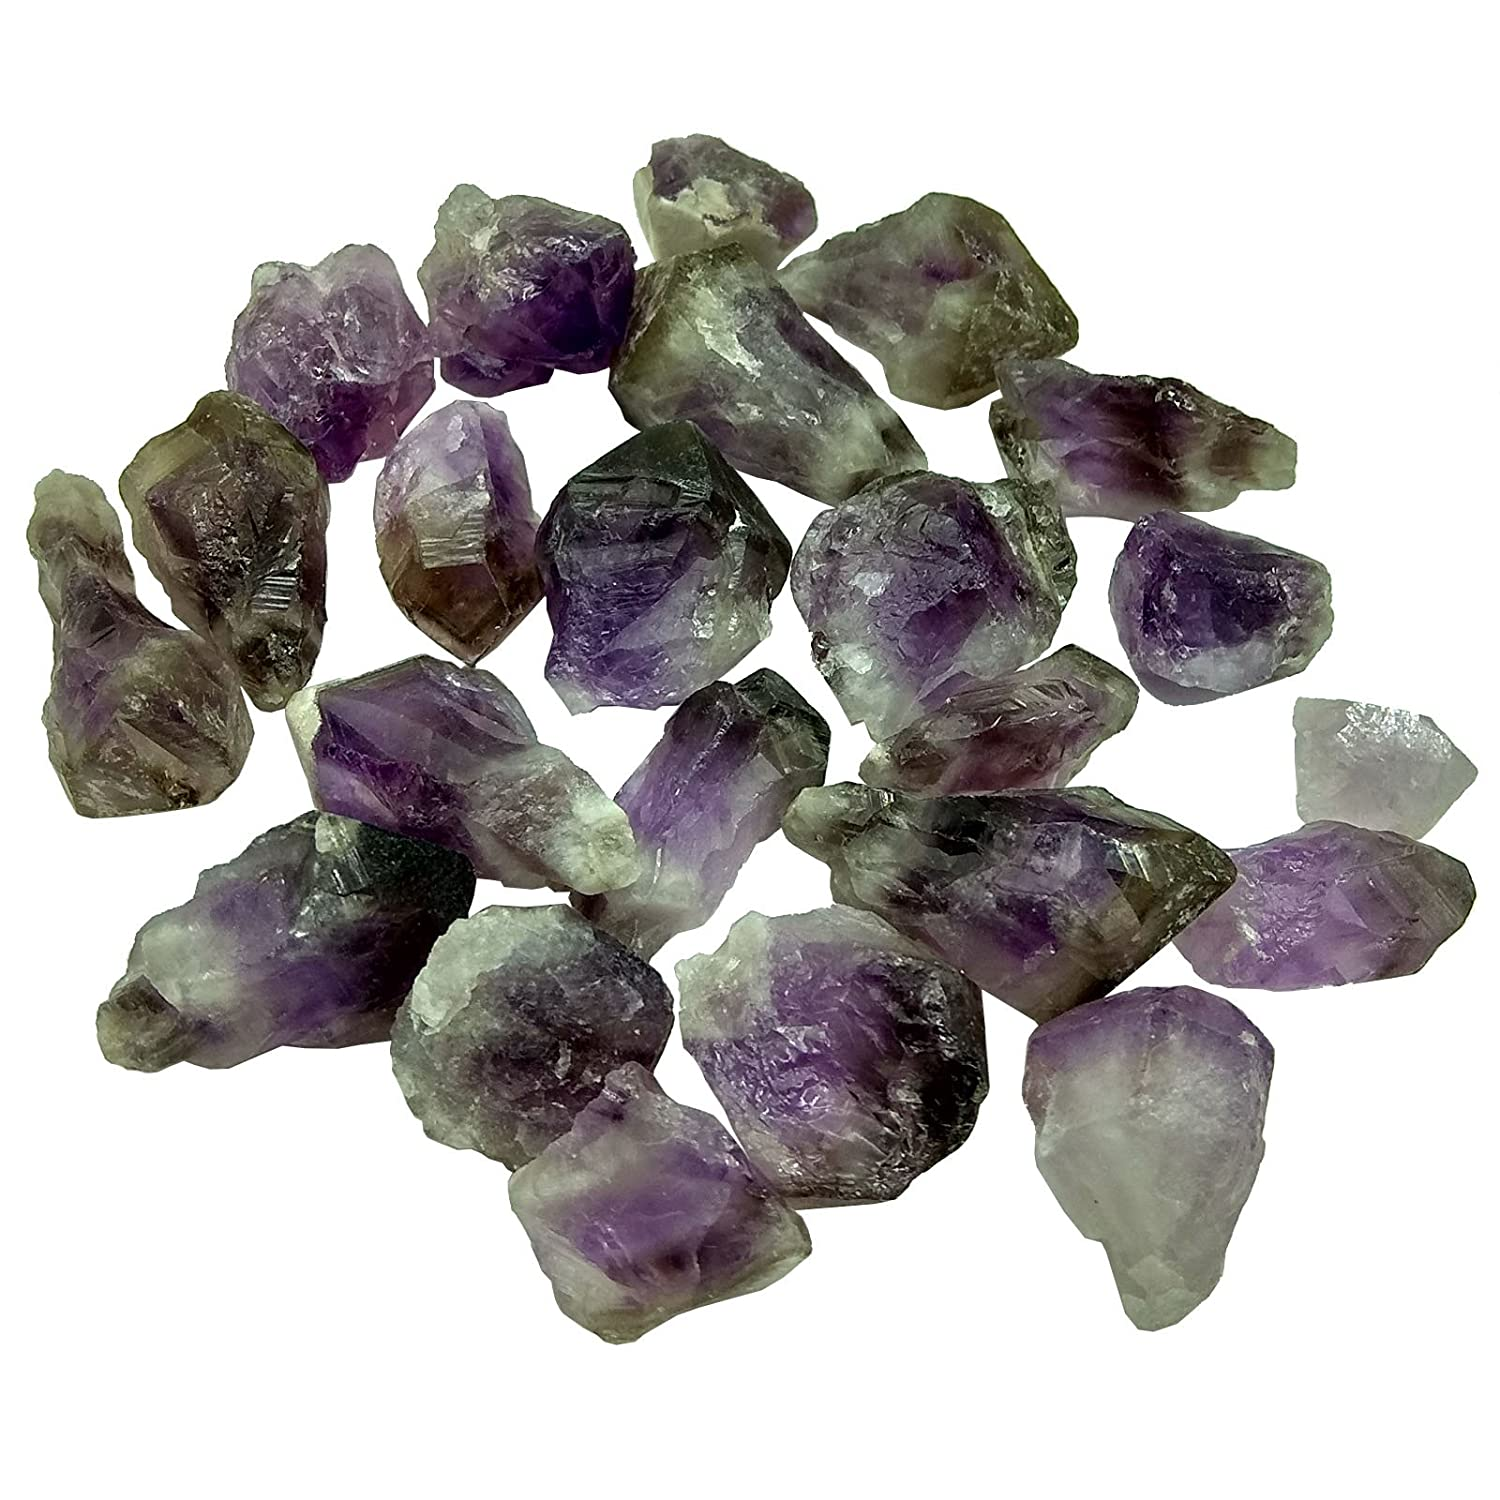 and Polishing /& Reiki Crystal Healing Tumbling Lapidary MOSOAO 4.5oz Natural Rough Purple Amethyst Quartz Crystals Each Size 0.5 to 2.5 Inch Raw Natural Stones for Cabbing Cutting